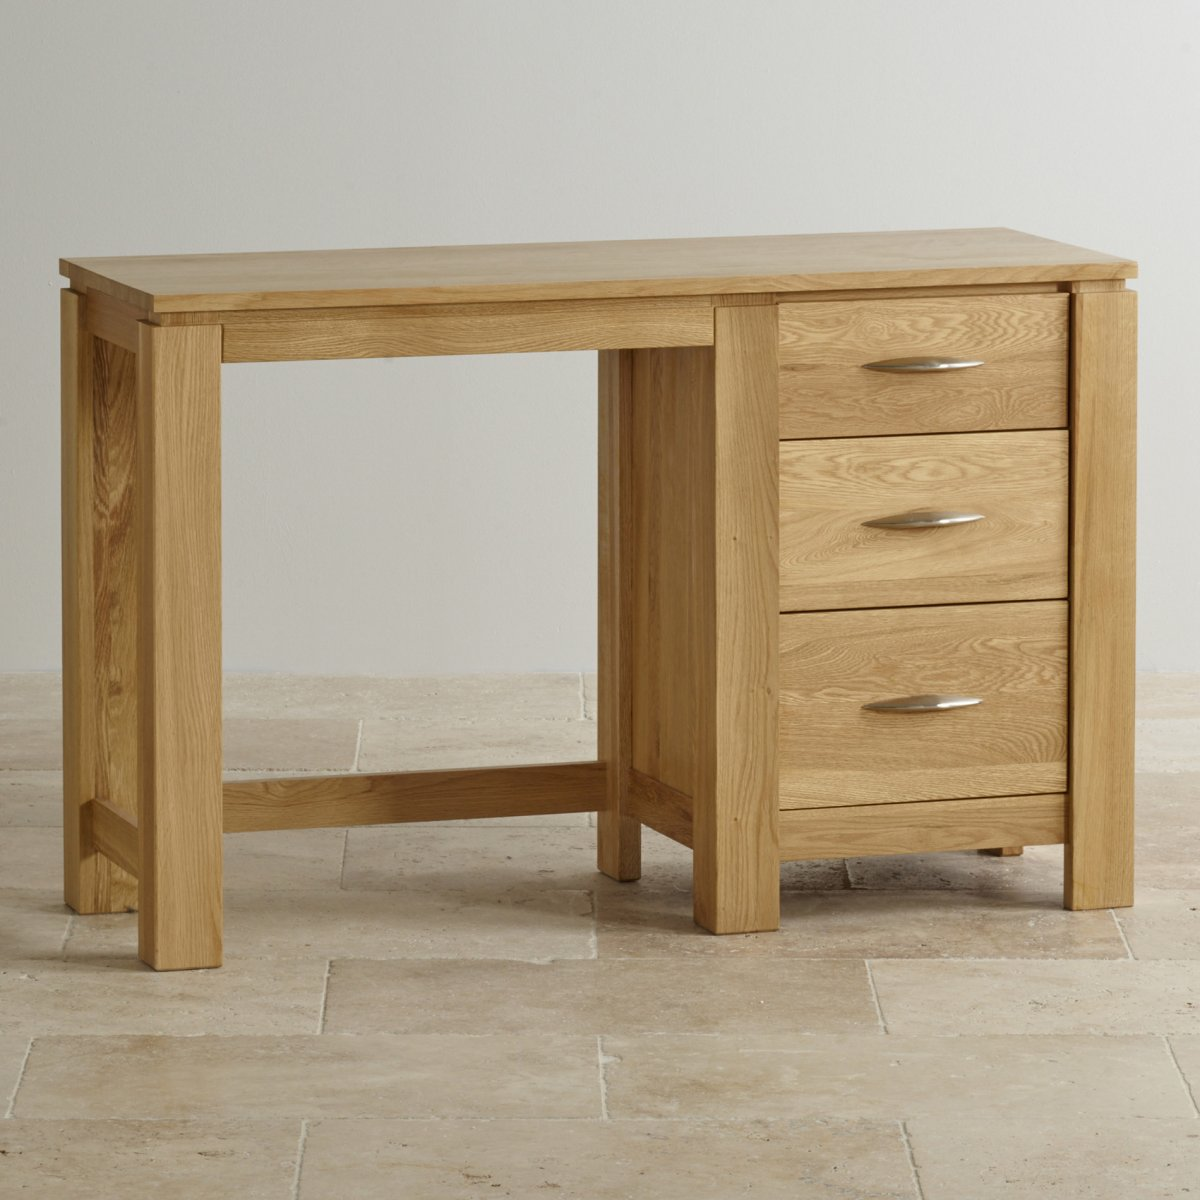 Galway natural solid oak dressing table by furniture land